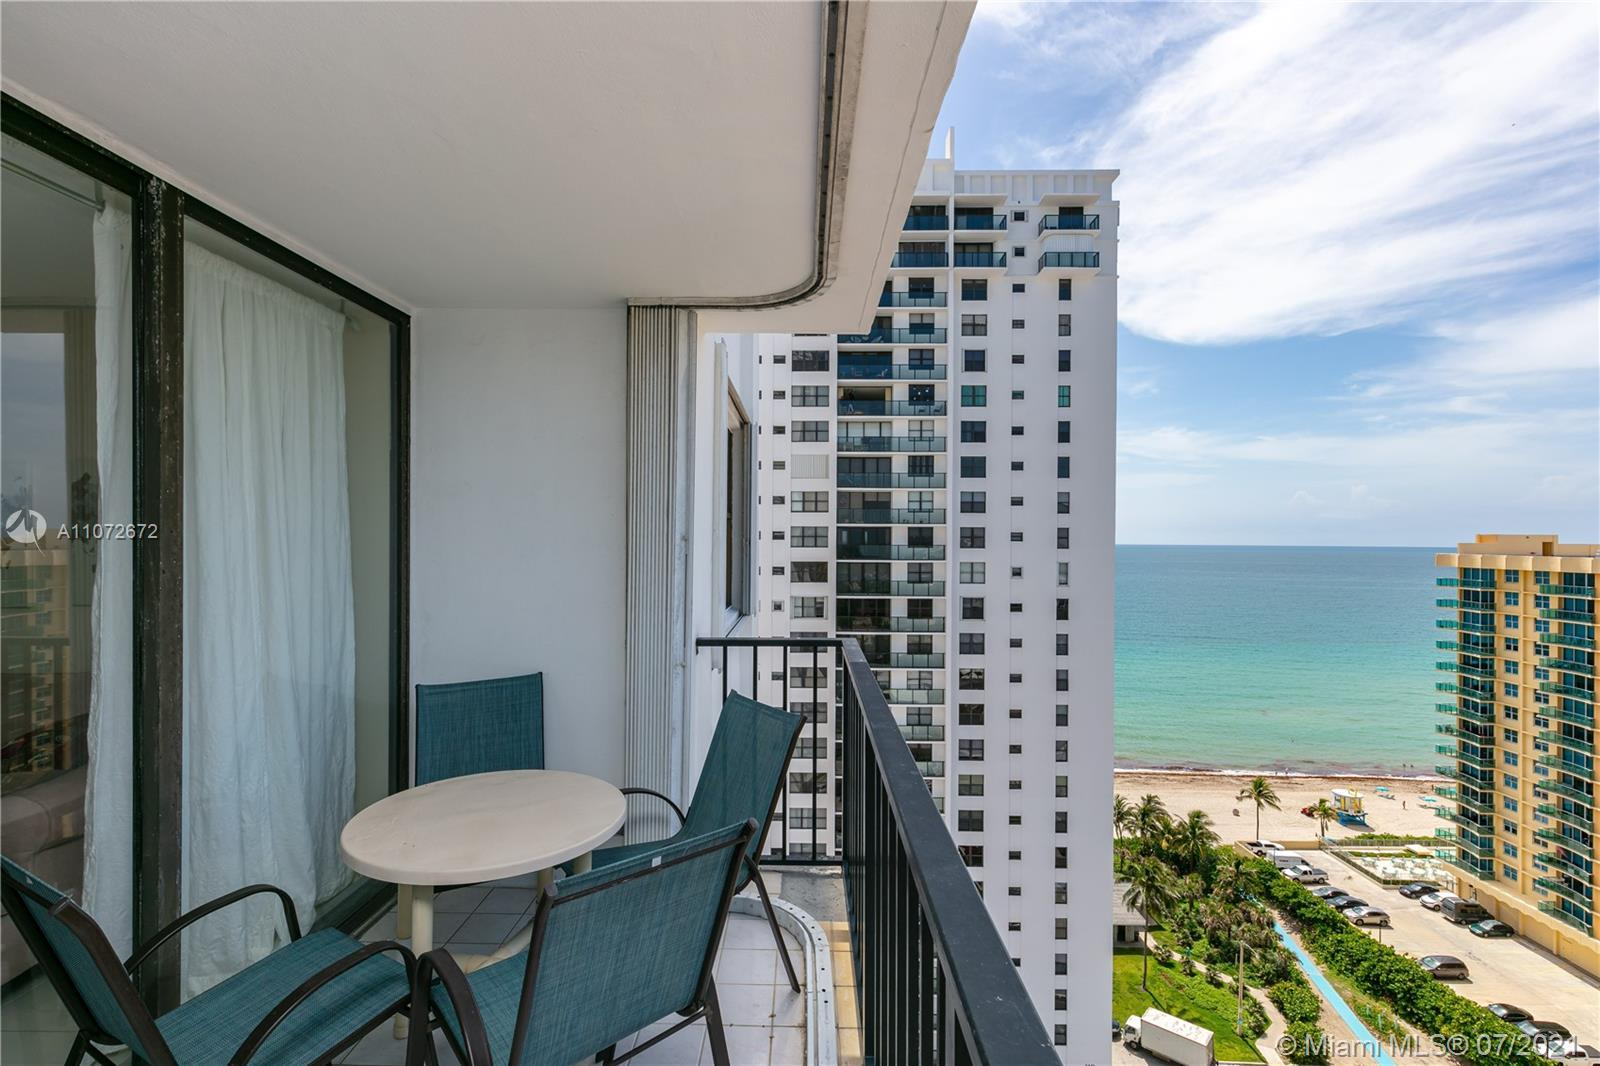 High floor, lovely 2br/2ba with great ocean and Intracoastal views. The complex features the resort